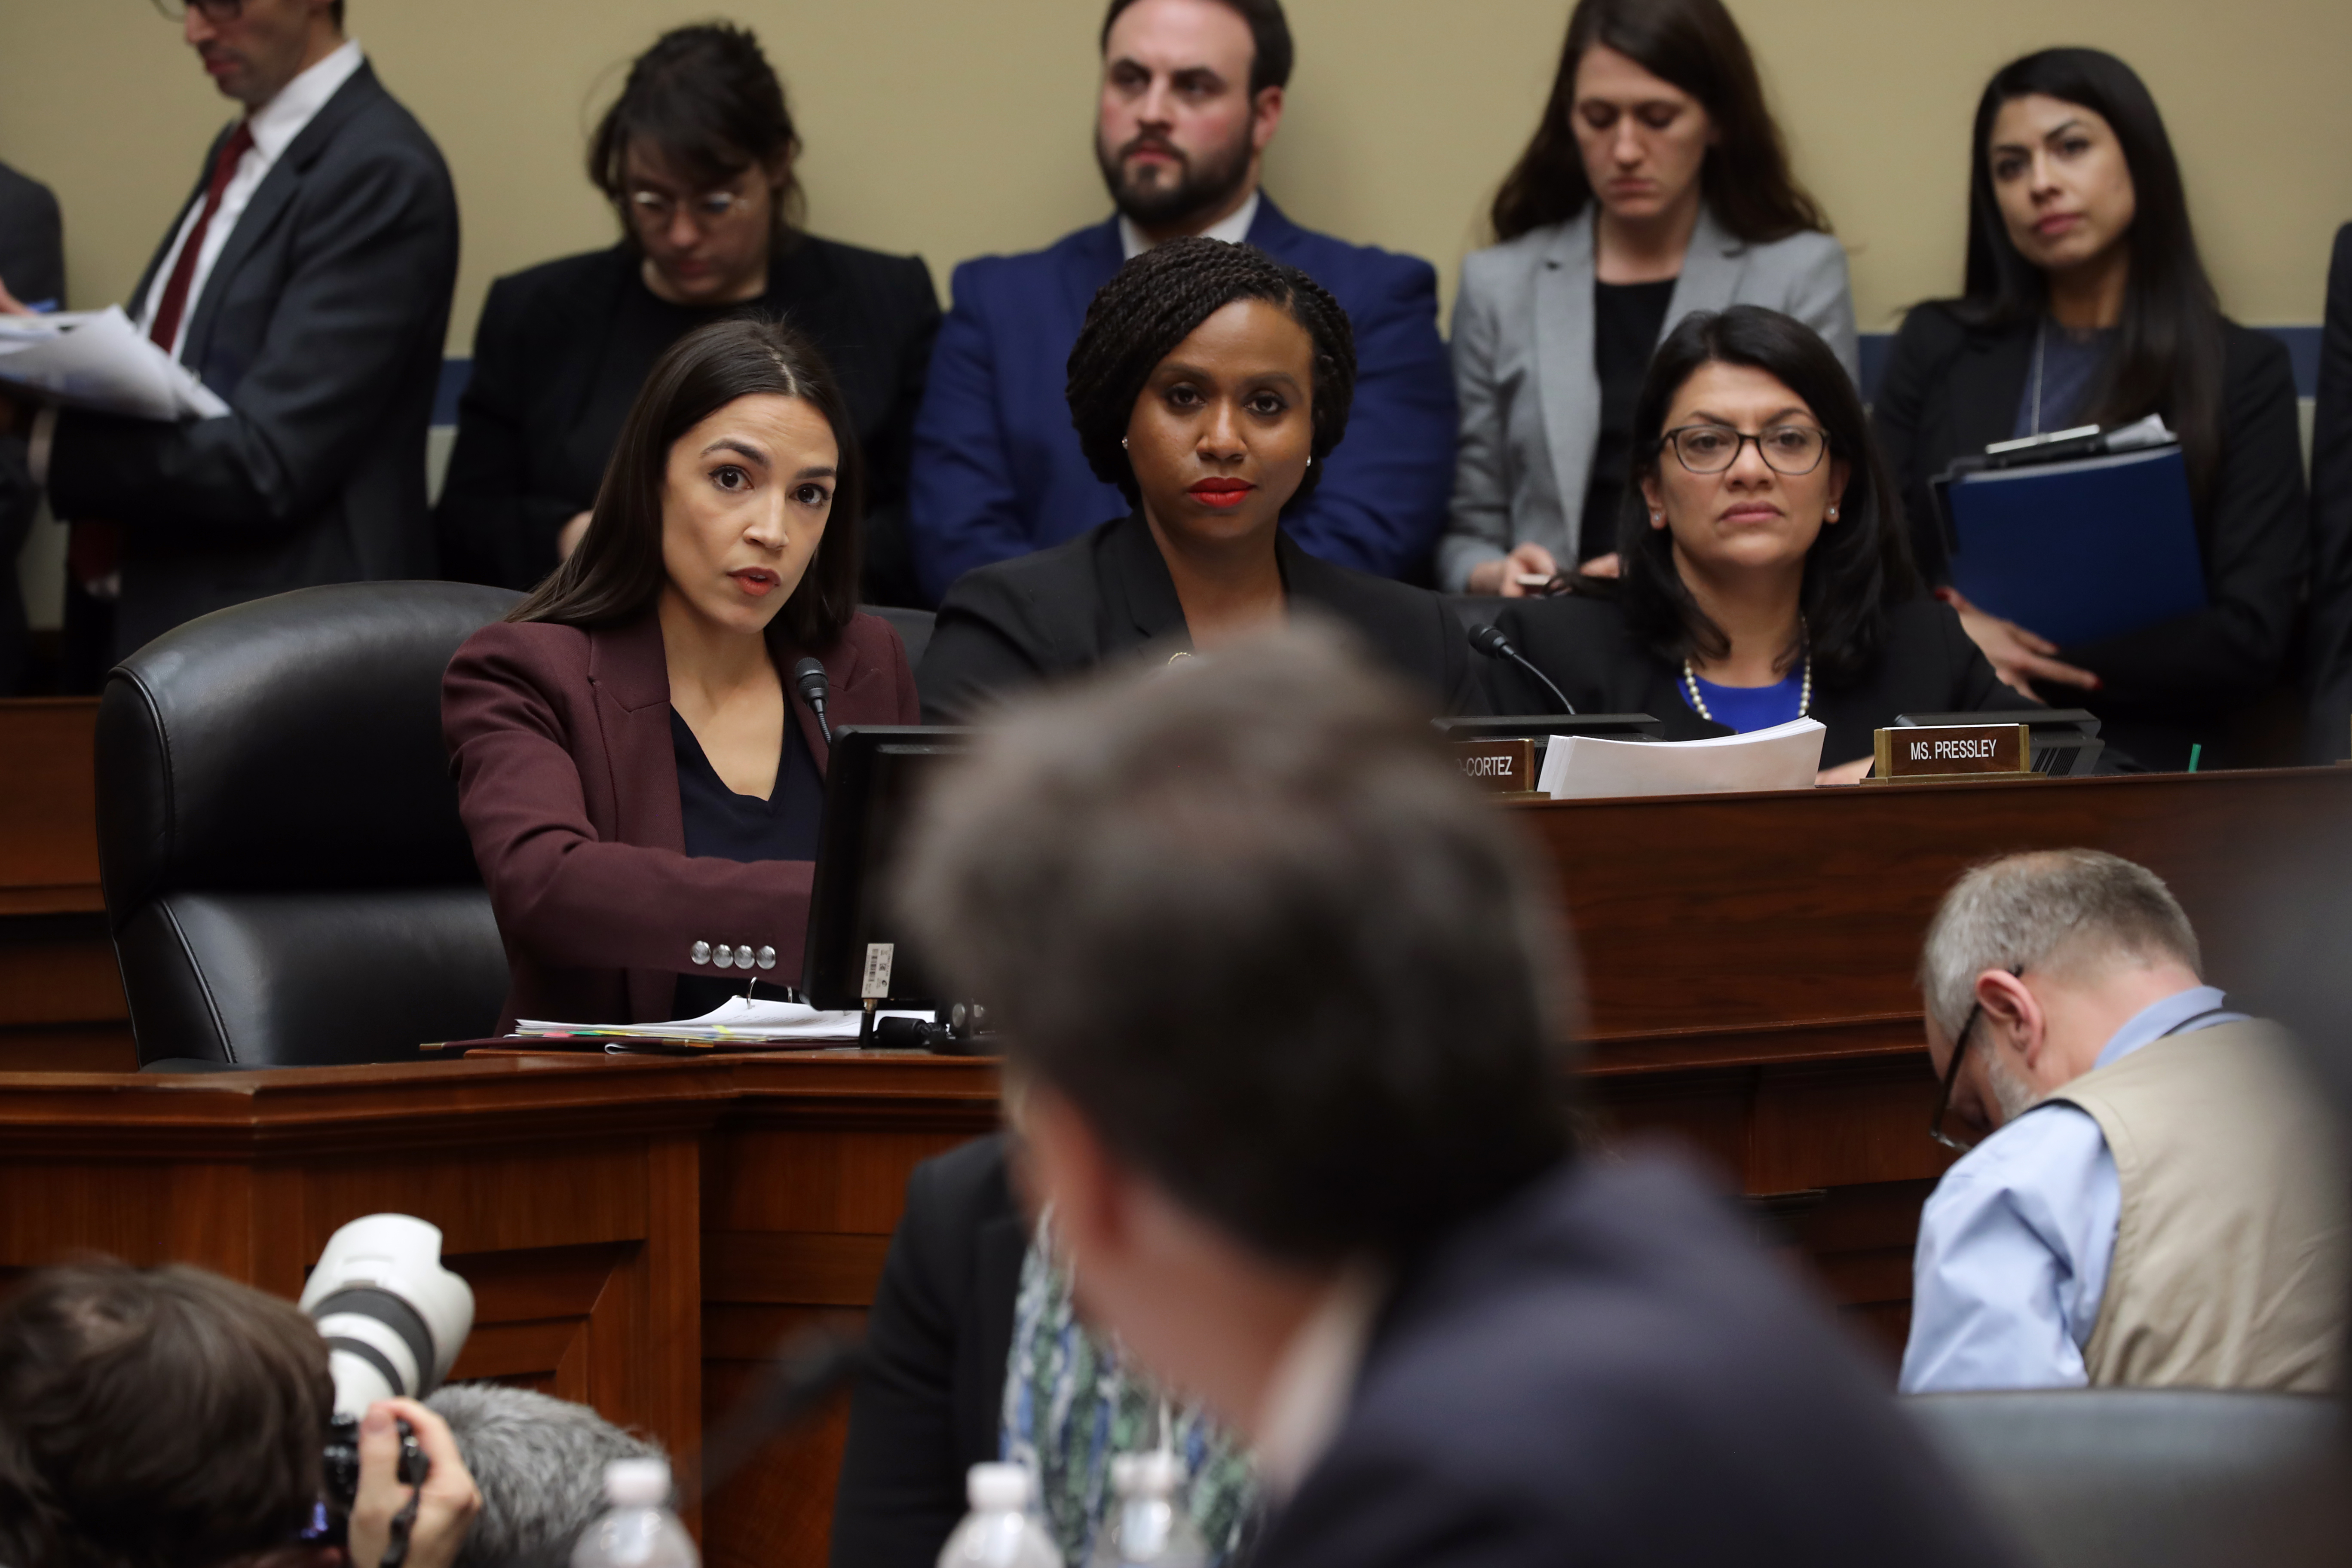 Reps. Alexandria Ocasio-Cortez (D-NY), Ayanna Pressley (D-MA), and Rashida Tlaib (D-MI) during a House Oversight Committee hearing on February 27, 2019. (Chip Somodevilla/Getty Images)